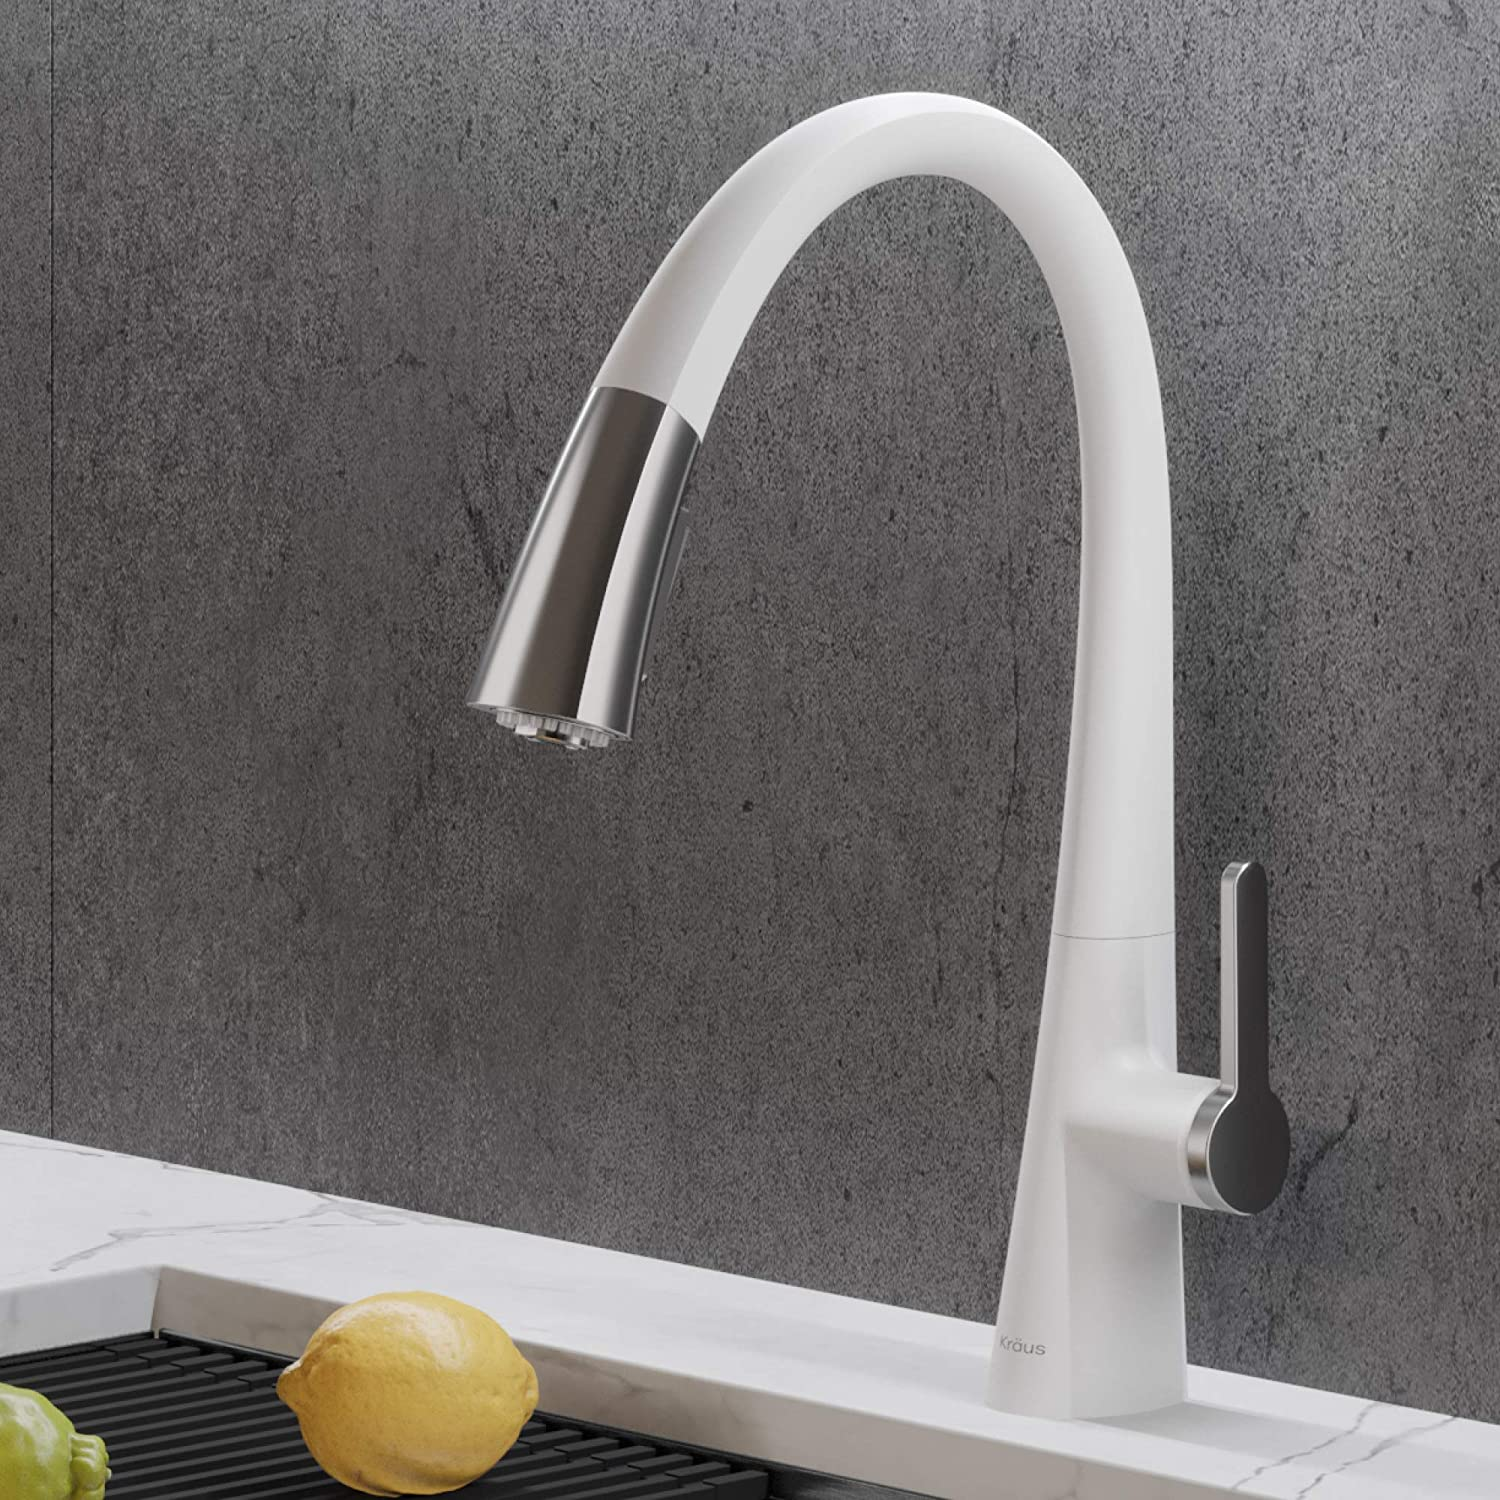 Kraus KPF-1673CHWH Nolen Dual Function Pull, Faucets for Kitchen Sinks, Single-Handle, Matte White/Chrome Finish